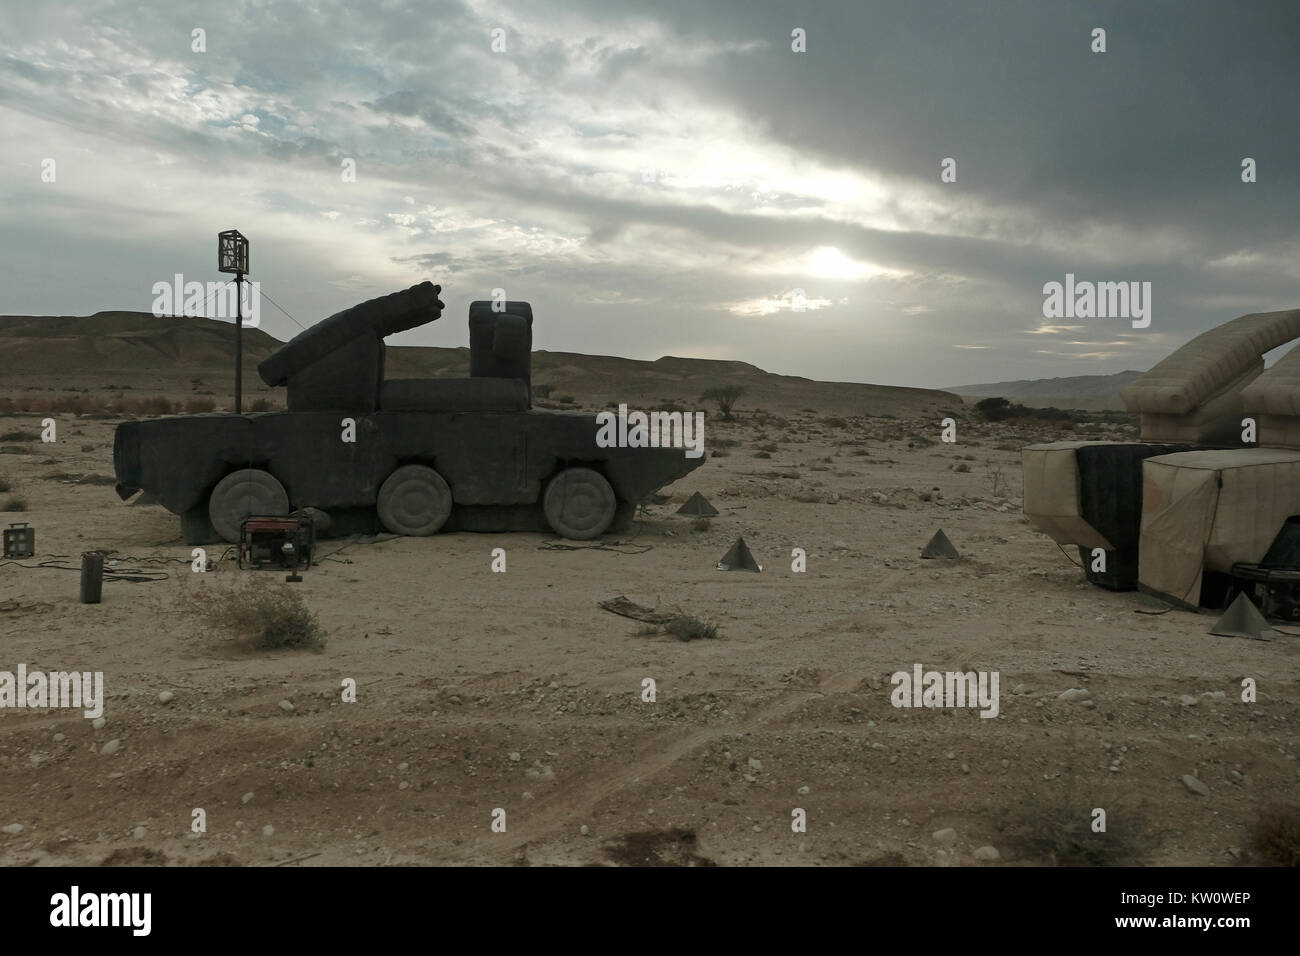 Inflatable decoy missile system of the Israeli military defense deployed in the western of the Arabah valley known Stock Photo